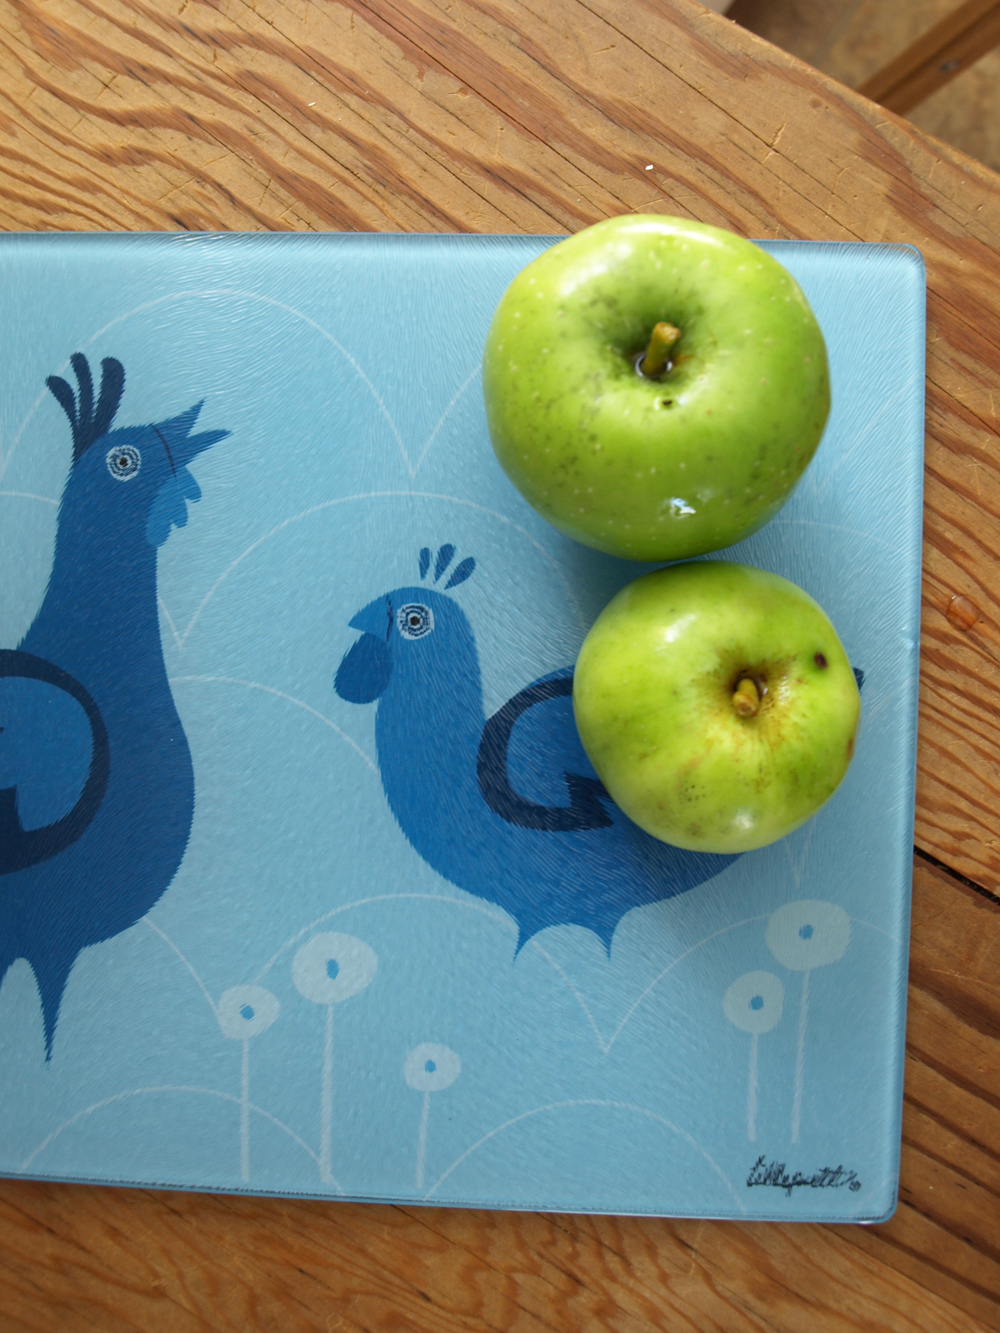 Tart little apples anyone? How about a blue rooster and hen cutting board?     Adding some glass cutting board/cheeseboard of the new designs… Up next, an old favorite, our birch tree print!